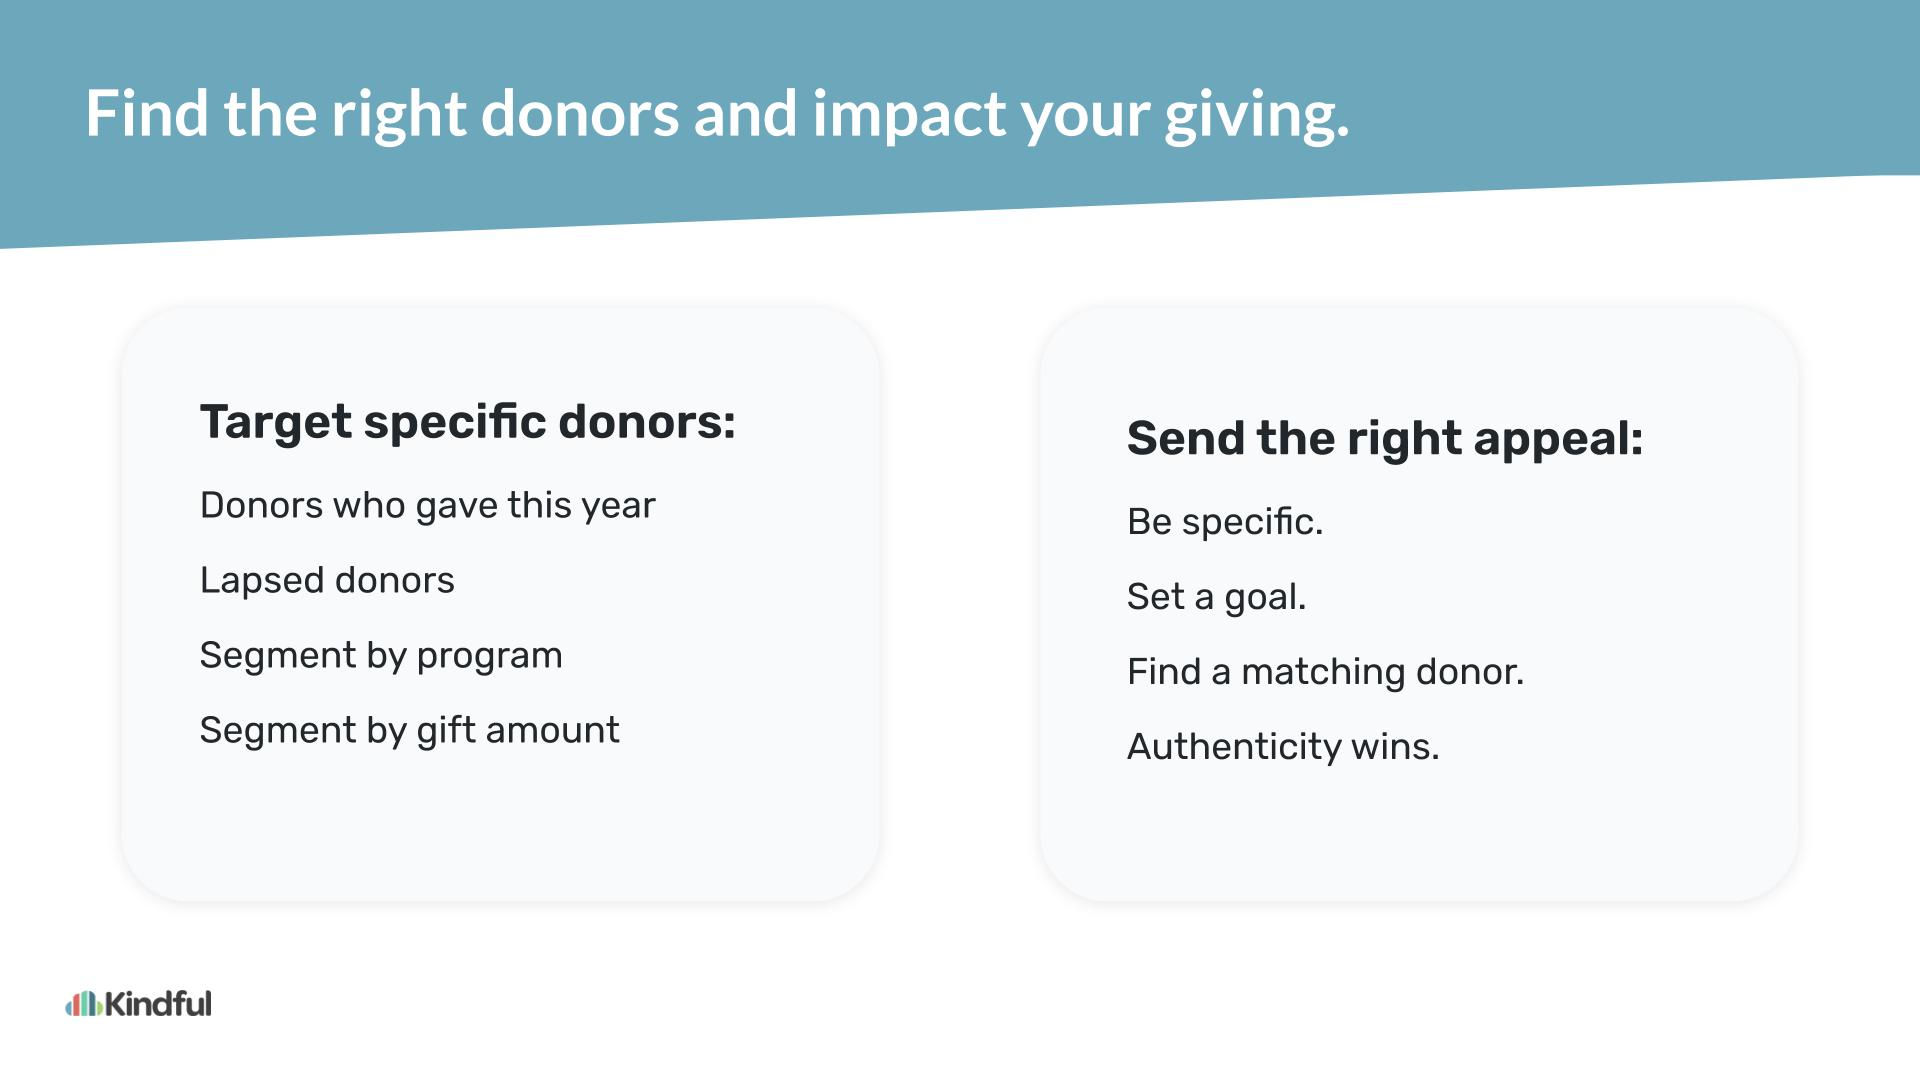 Slide 7: Find the right donors and impact your giving